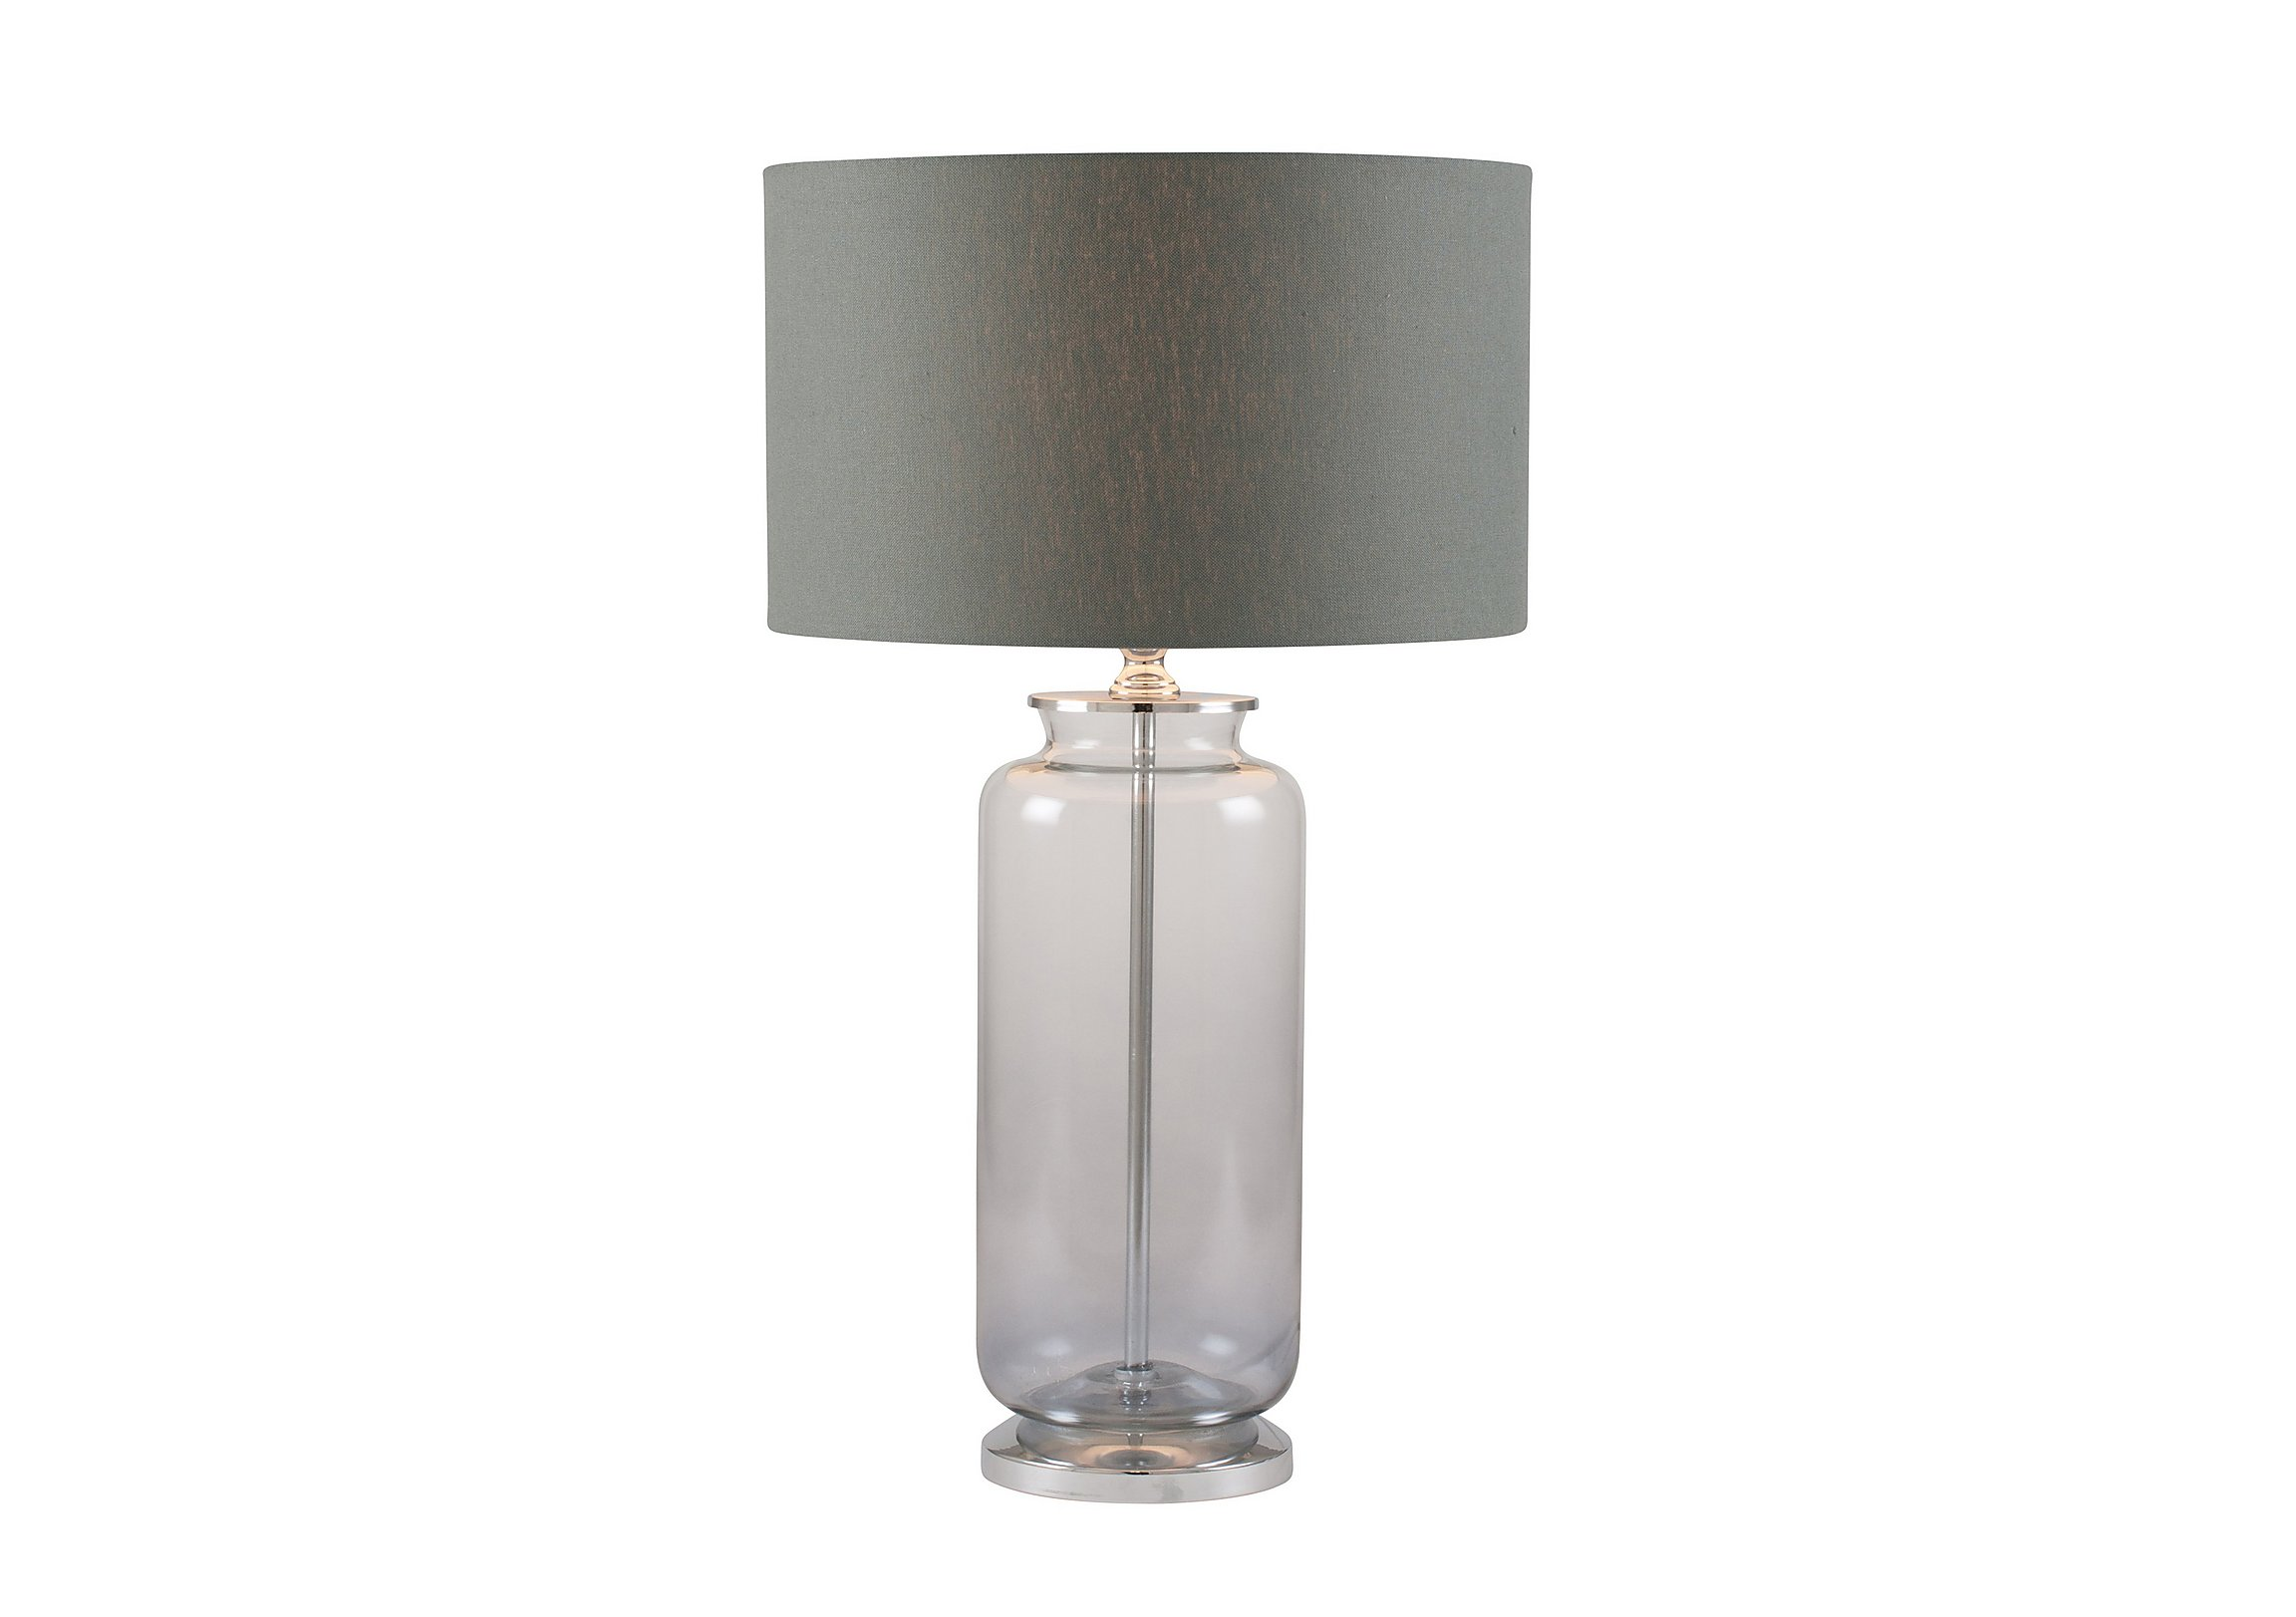 grey rustic ceramic lamp base table image udine